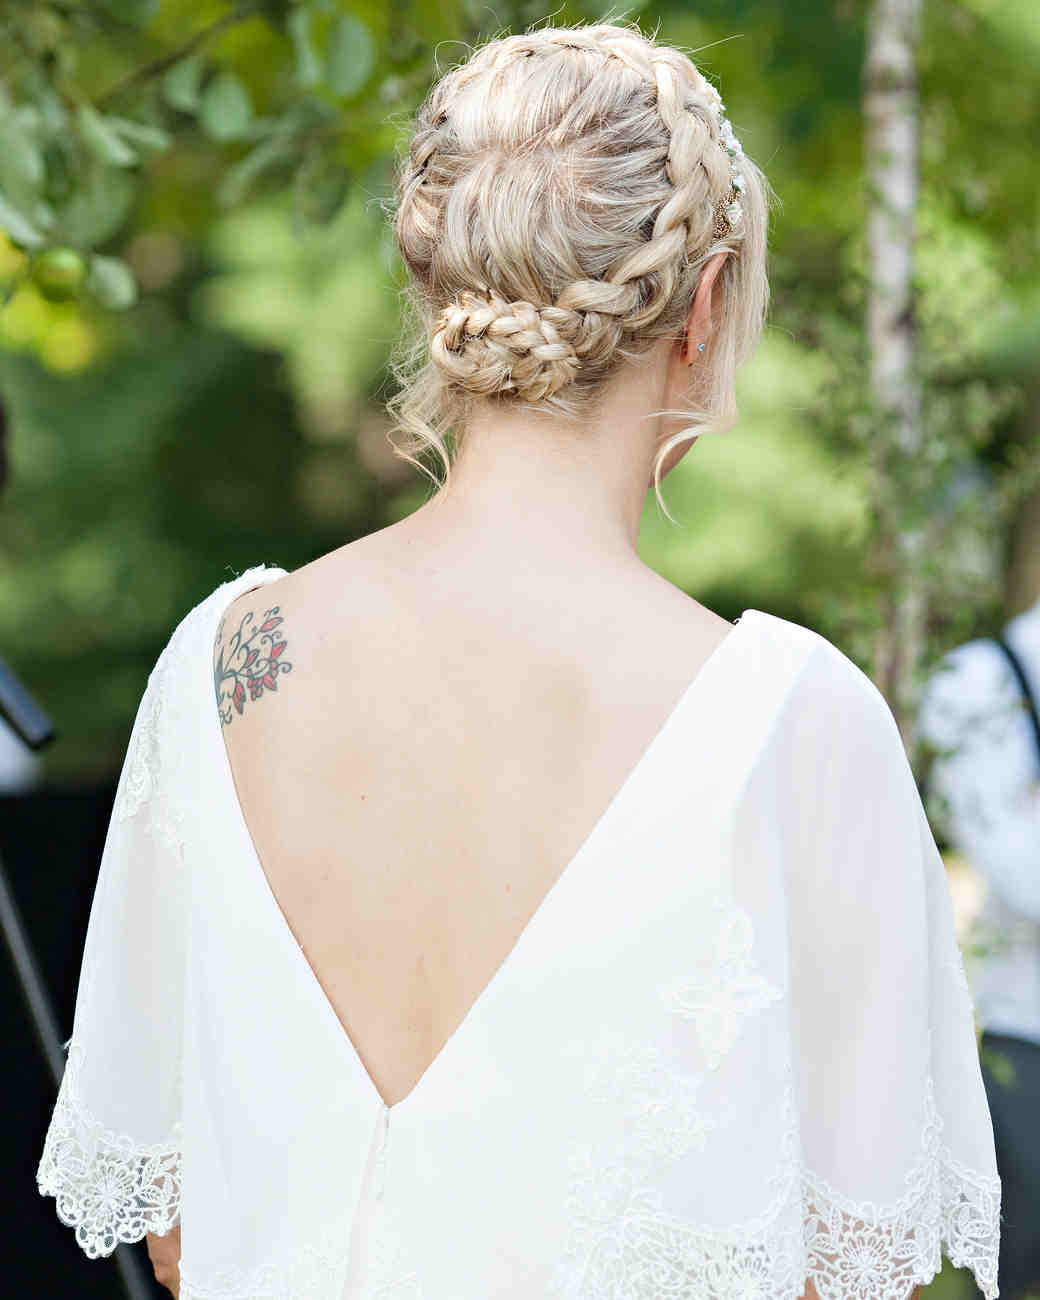 Wedding Hair Style Video: 29 Cool Wedding Hairstyles For The Modern Bride